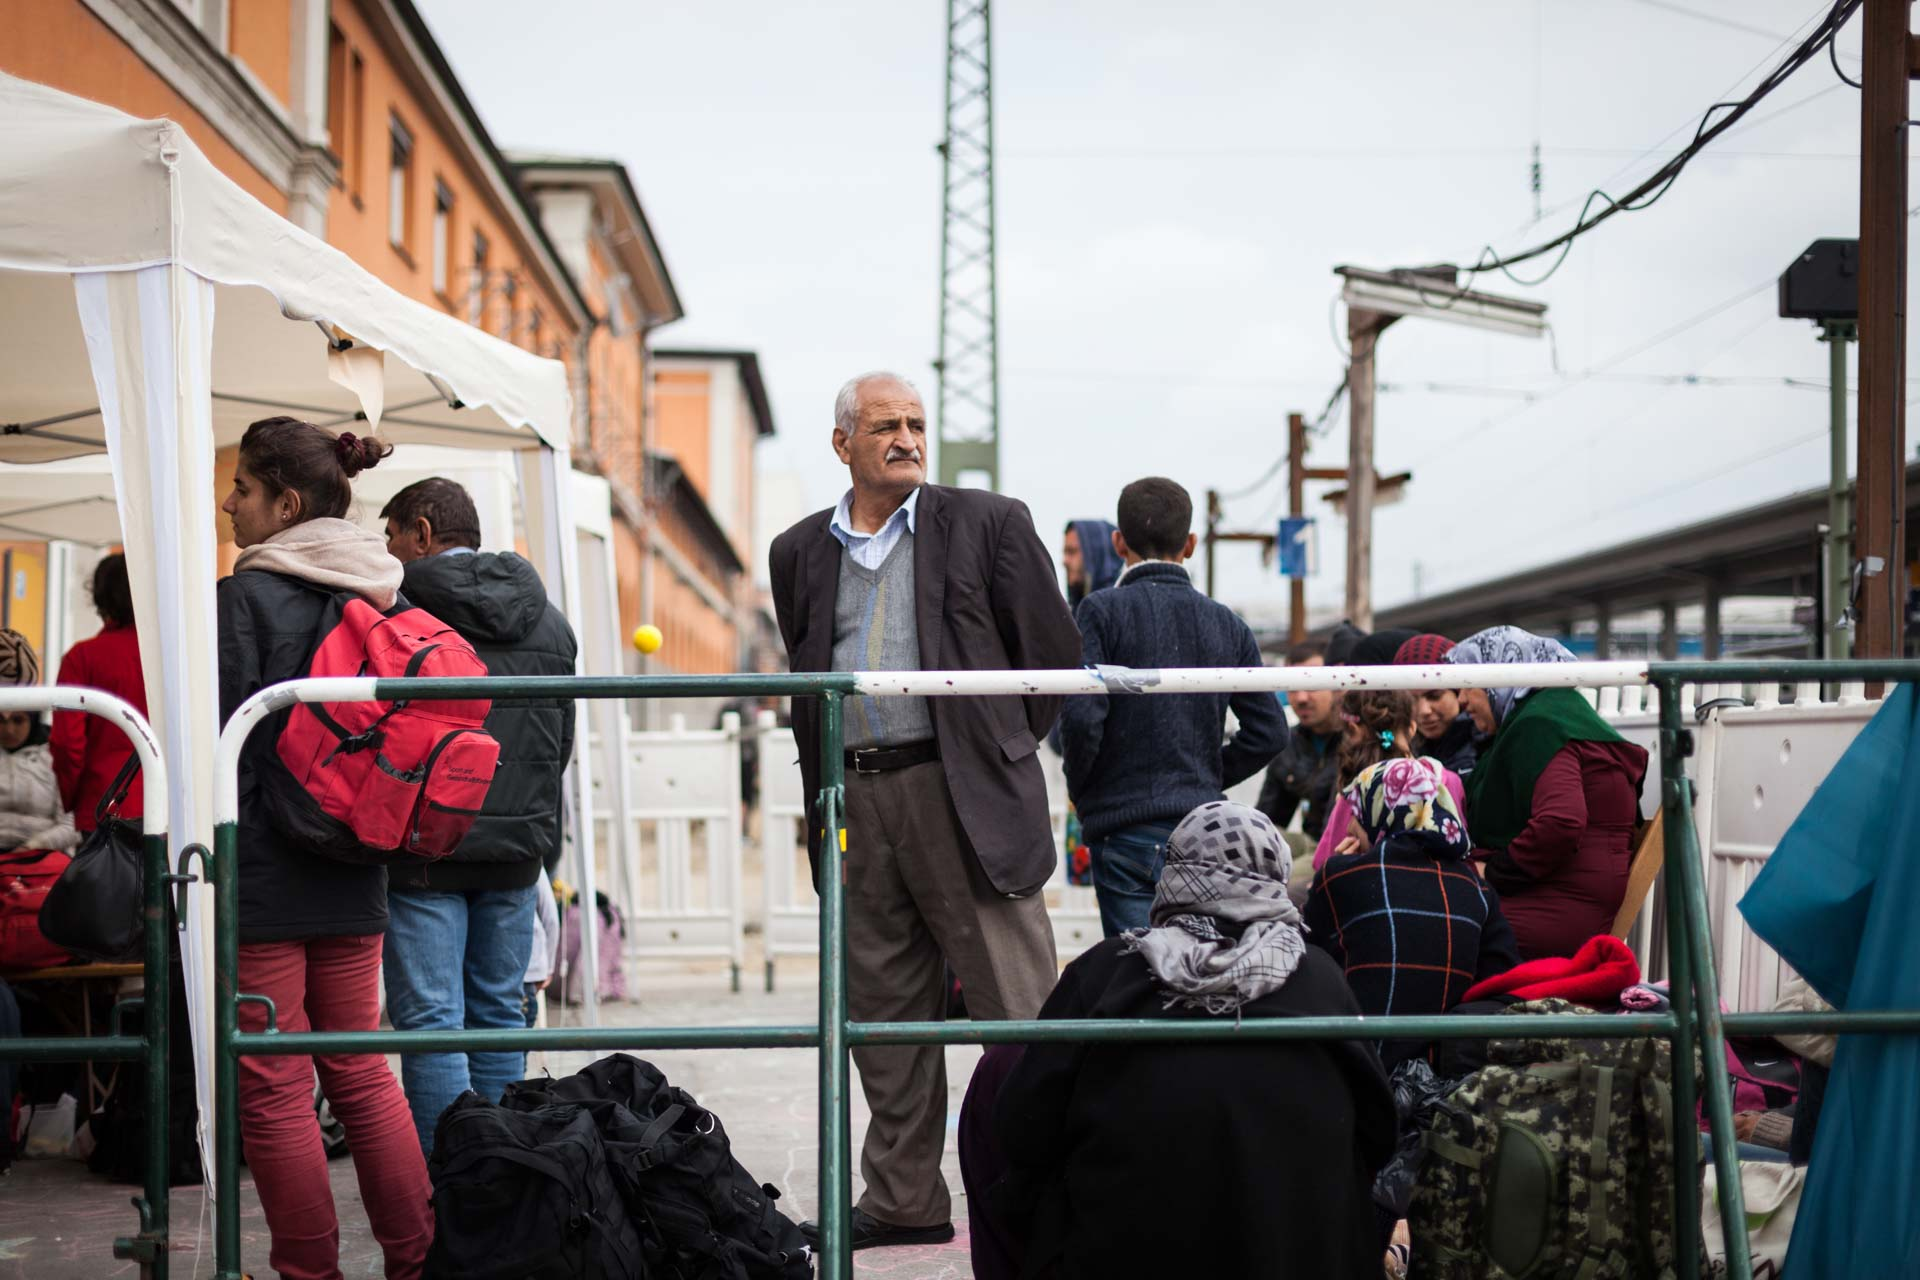 A Yezidi man from Sinjar in Iraq is waiting for an ambulance for his wife at the train station in Passau, Germany. She twisted her ankle somewhere in Serbia.